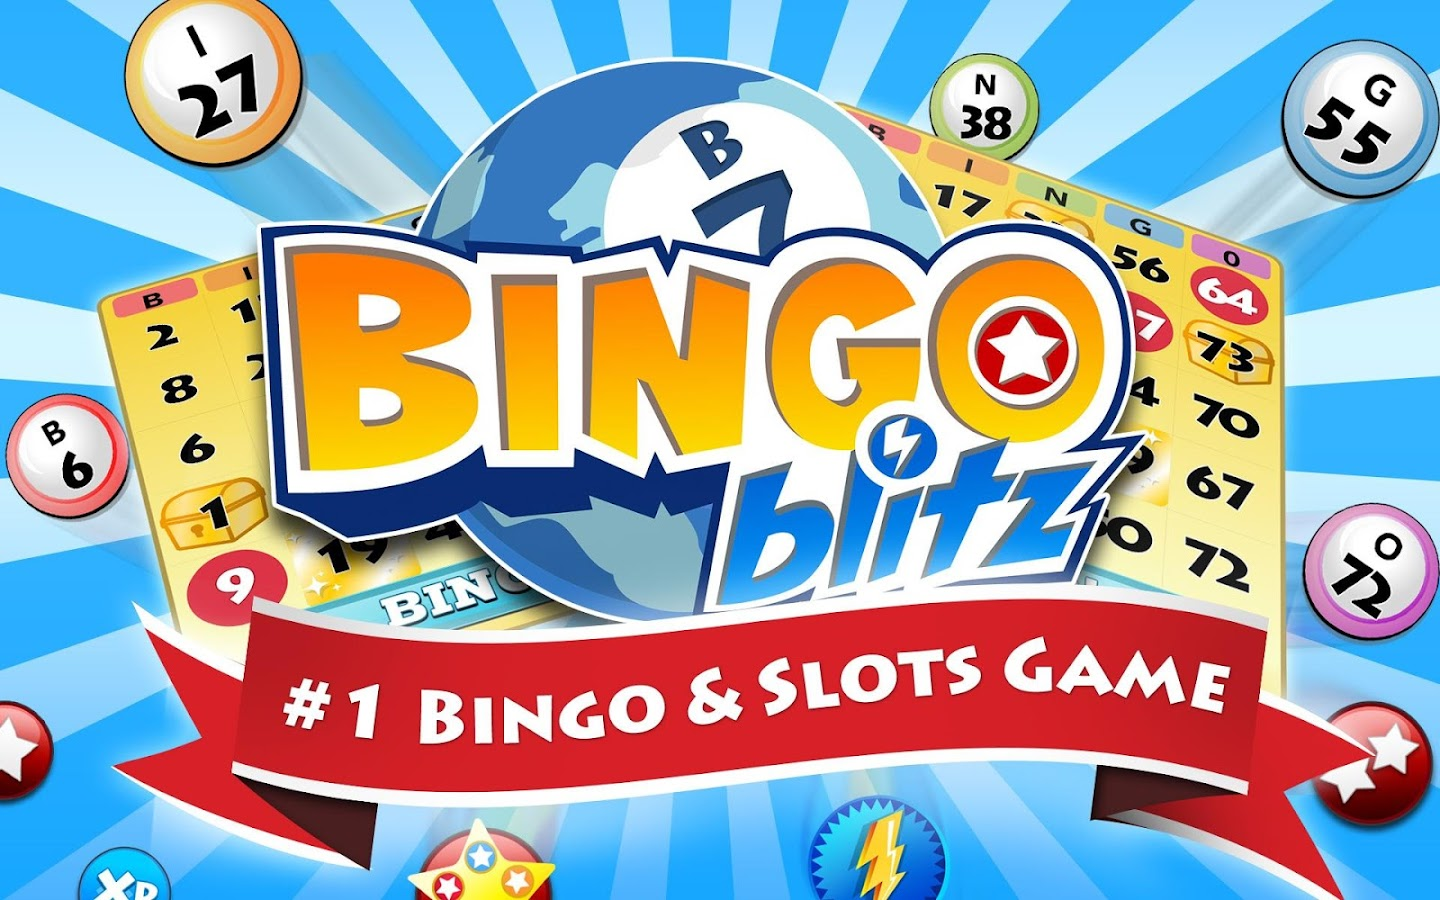 Bingo Blitz Bingo Slots Games Android Apps On Google Play